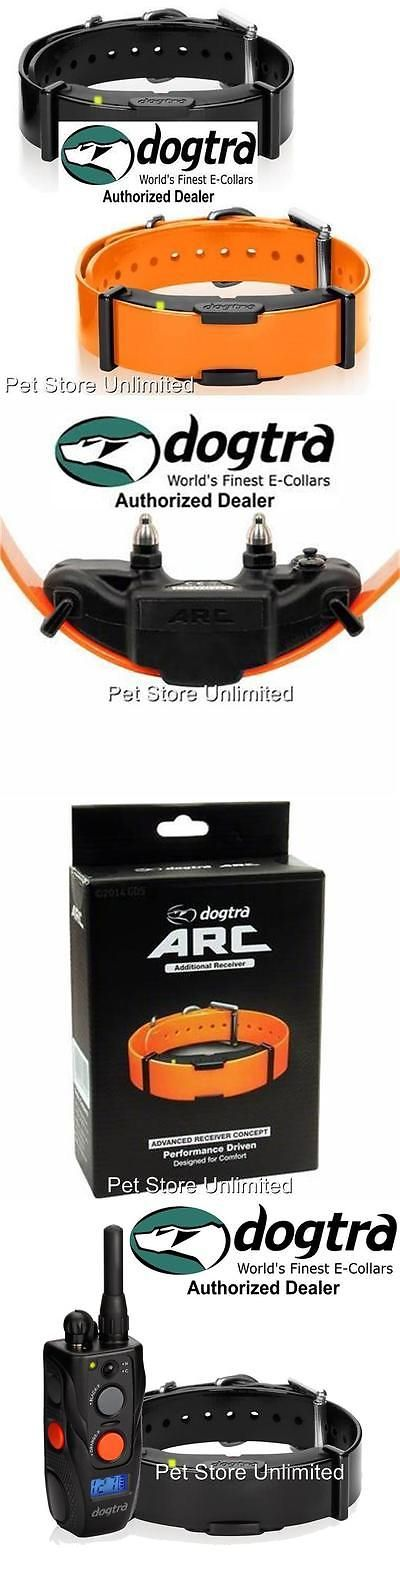 Other Dog Training and Obedience 146245: Dogtra Arc-Rx Extra Collar Orange / Black For Arc Low Profile Remote Trainer BUY IT NOW ONLY: $124.99